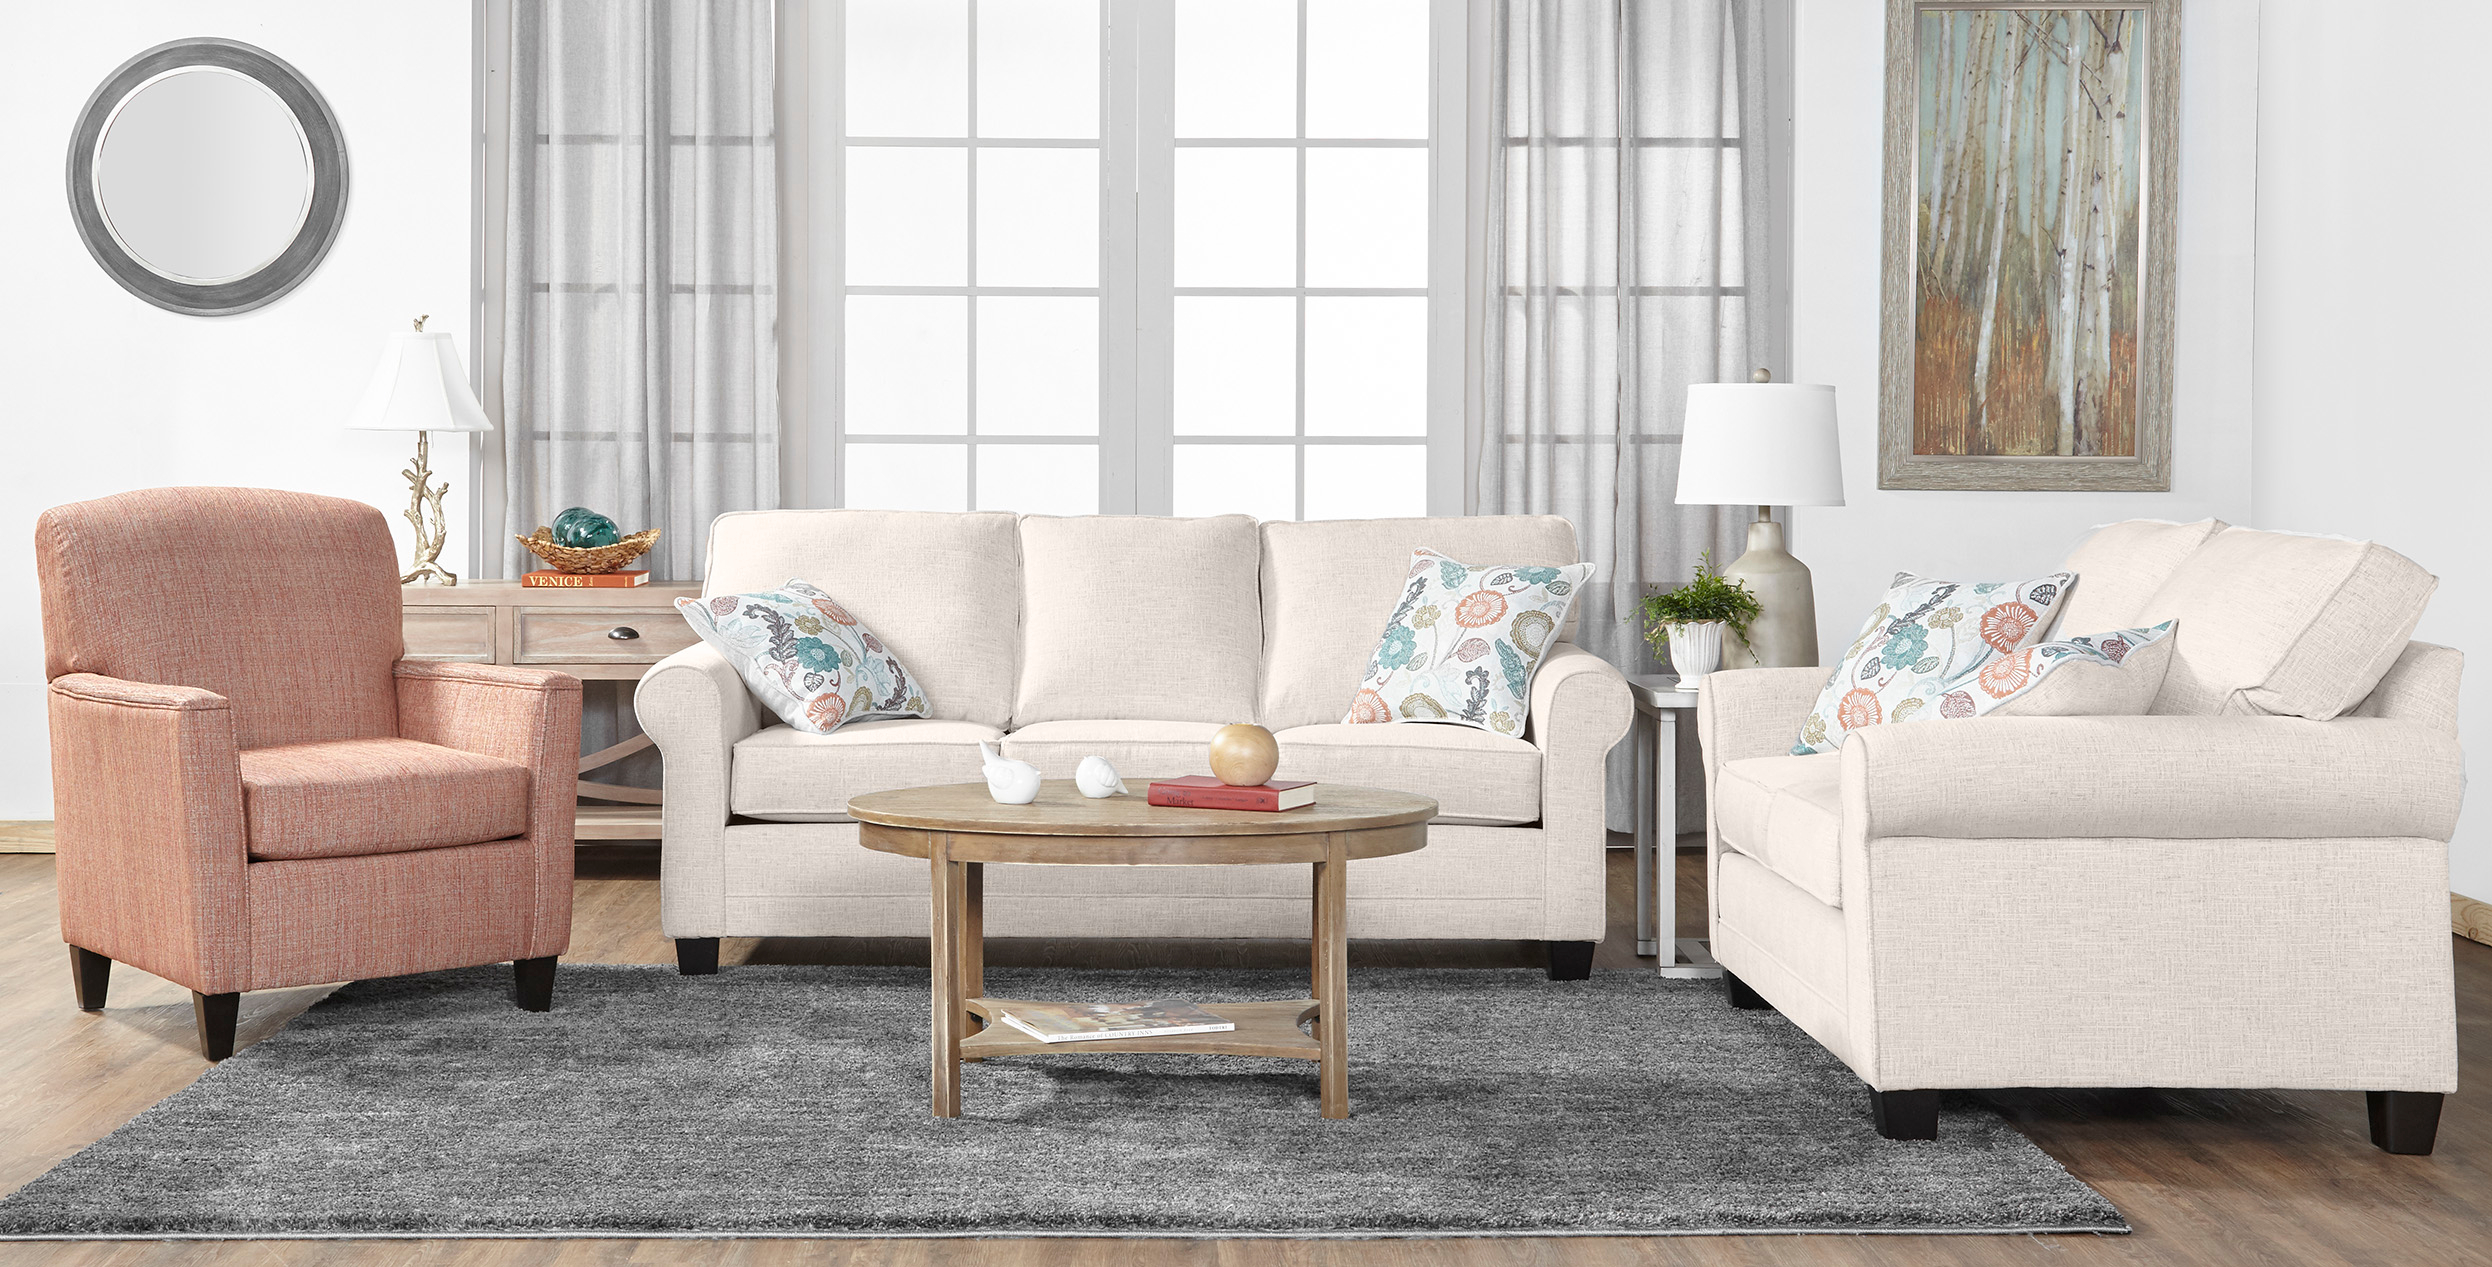 Serta 3700 Sofa and Love Seat Campbell Snow